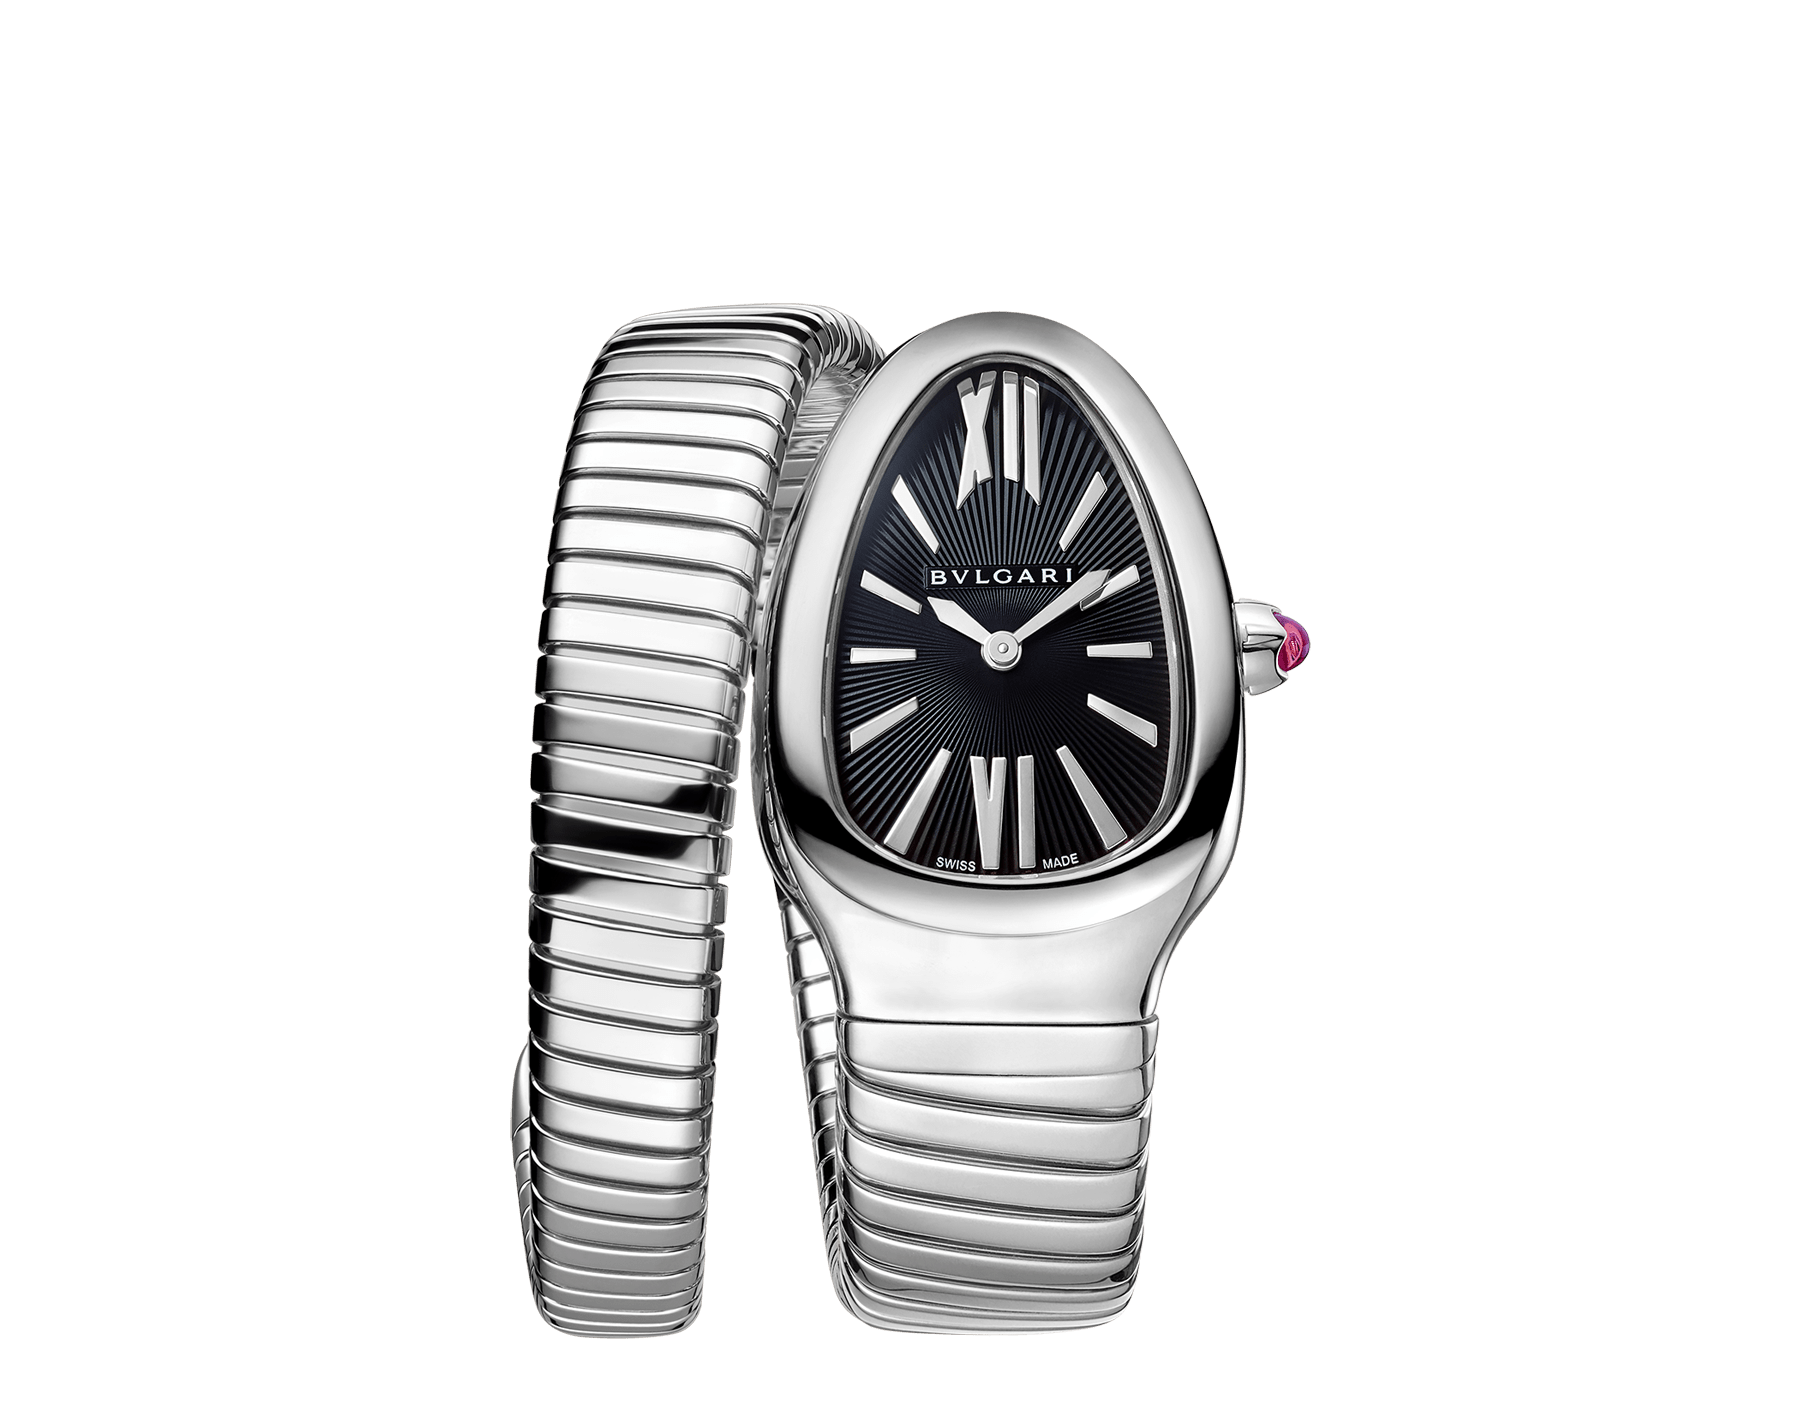 Serpenti Tubogas single spiral watch in stainless steel case and bracelet, with black opaline dial. SrpntTubogas-black-dial2 image 1